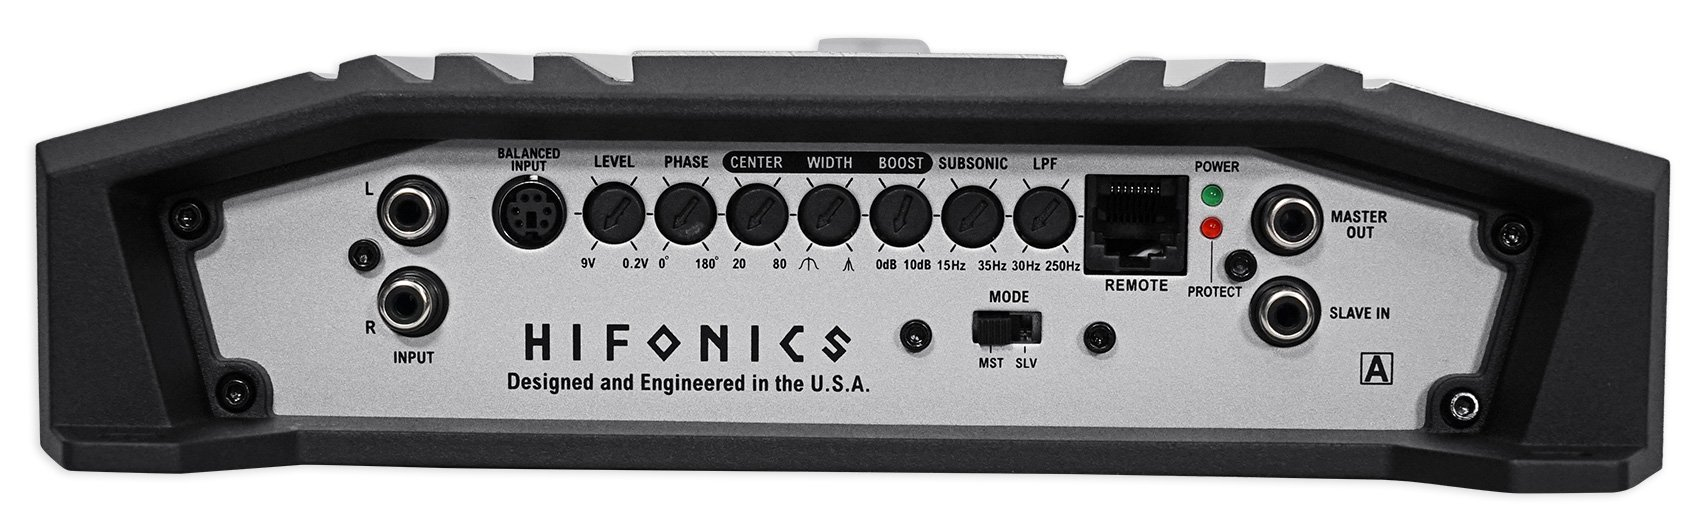 Hifonics BRX4016.1D Brutus 4000 Watt Mono Amplifier Car Audio Class-D Amp by Hifonics (Image #6)